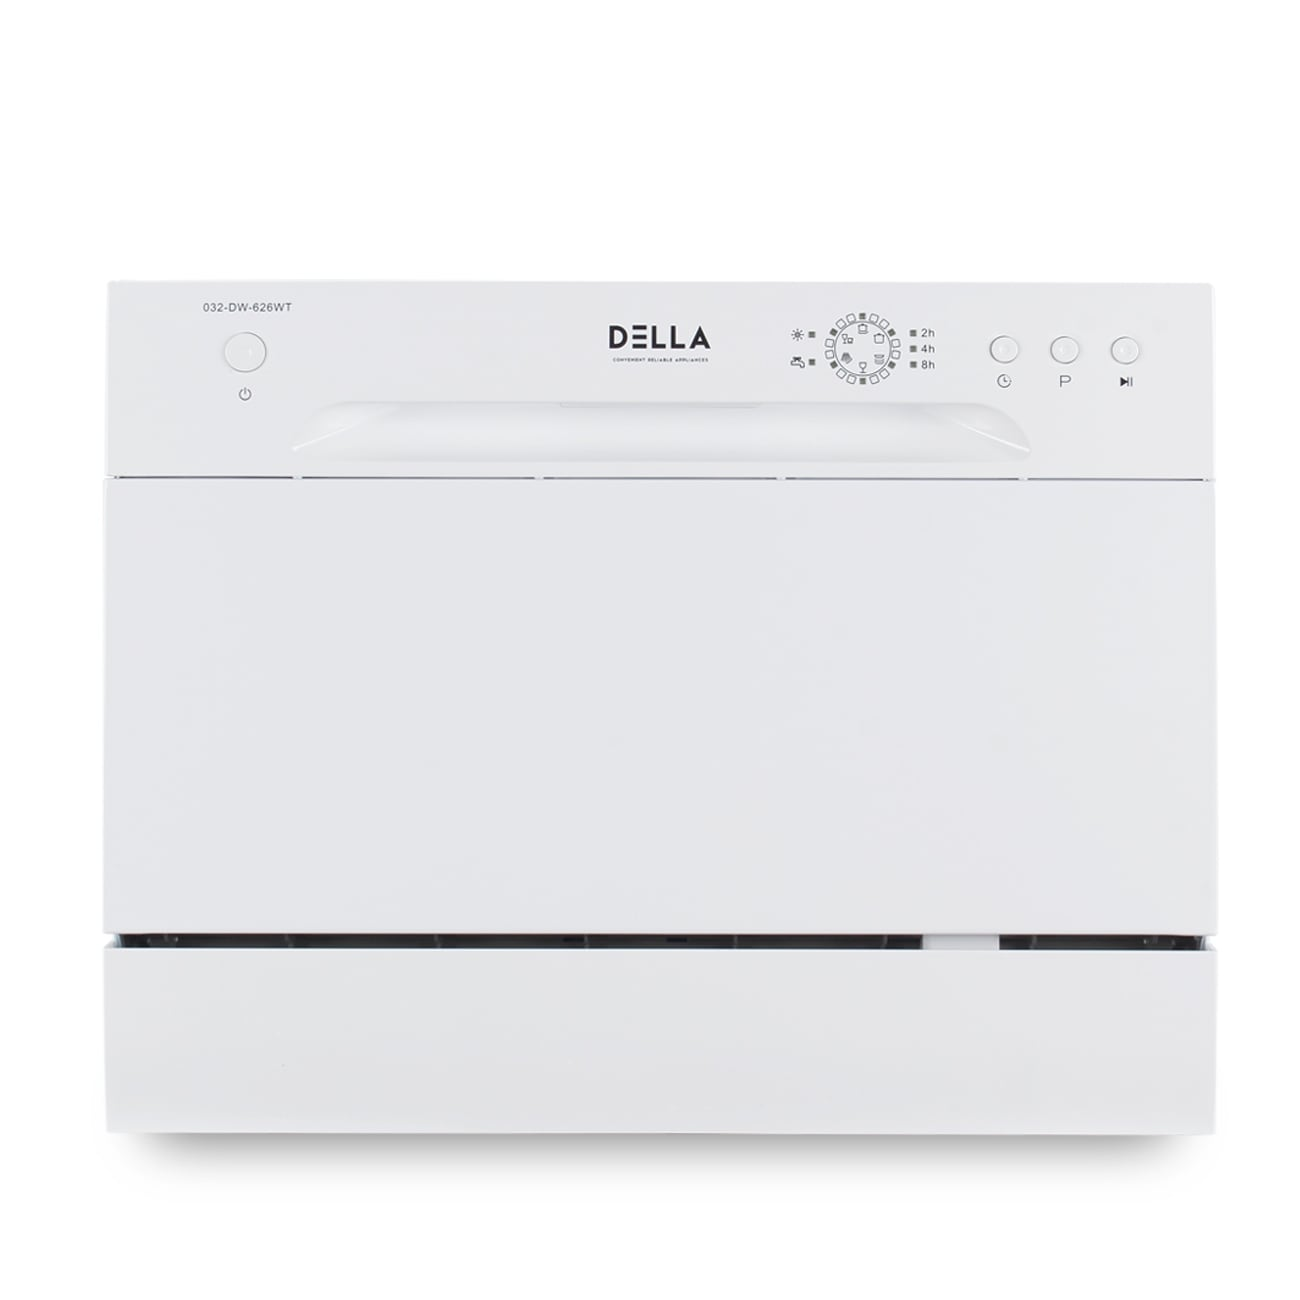 Shop DELLA Countertop Portable Dishwasher Stainless Steel W/ 6 Place  Settings U0026 LED Display   Free Shipping Today   Overstock.com   22902380